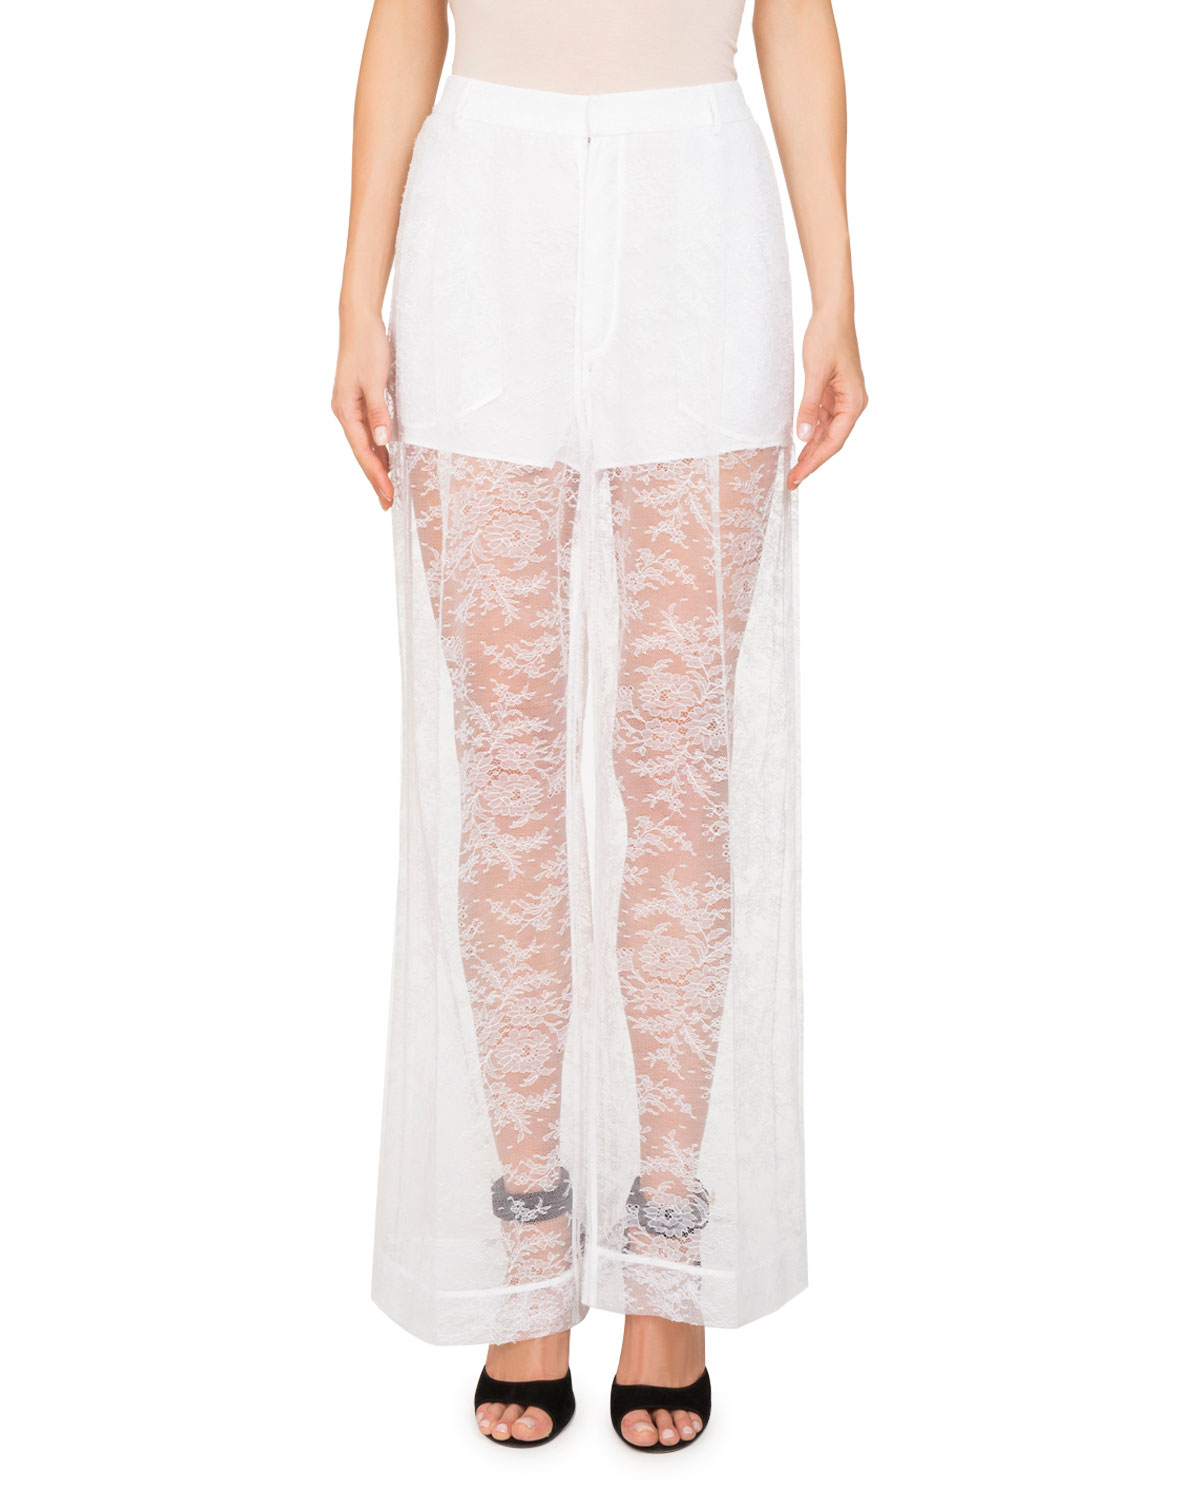 Floral-Lace Wide-Leg Pants w/ Shorts Lining